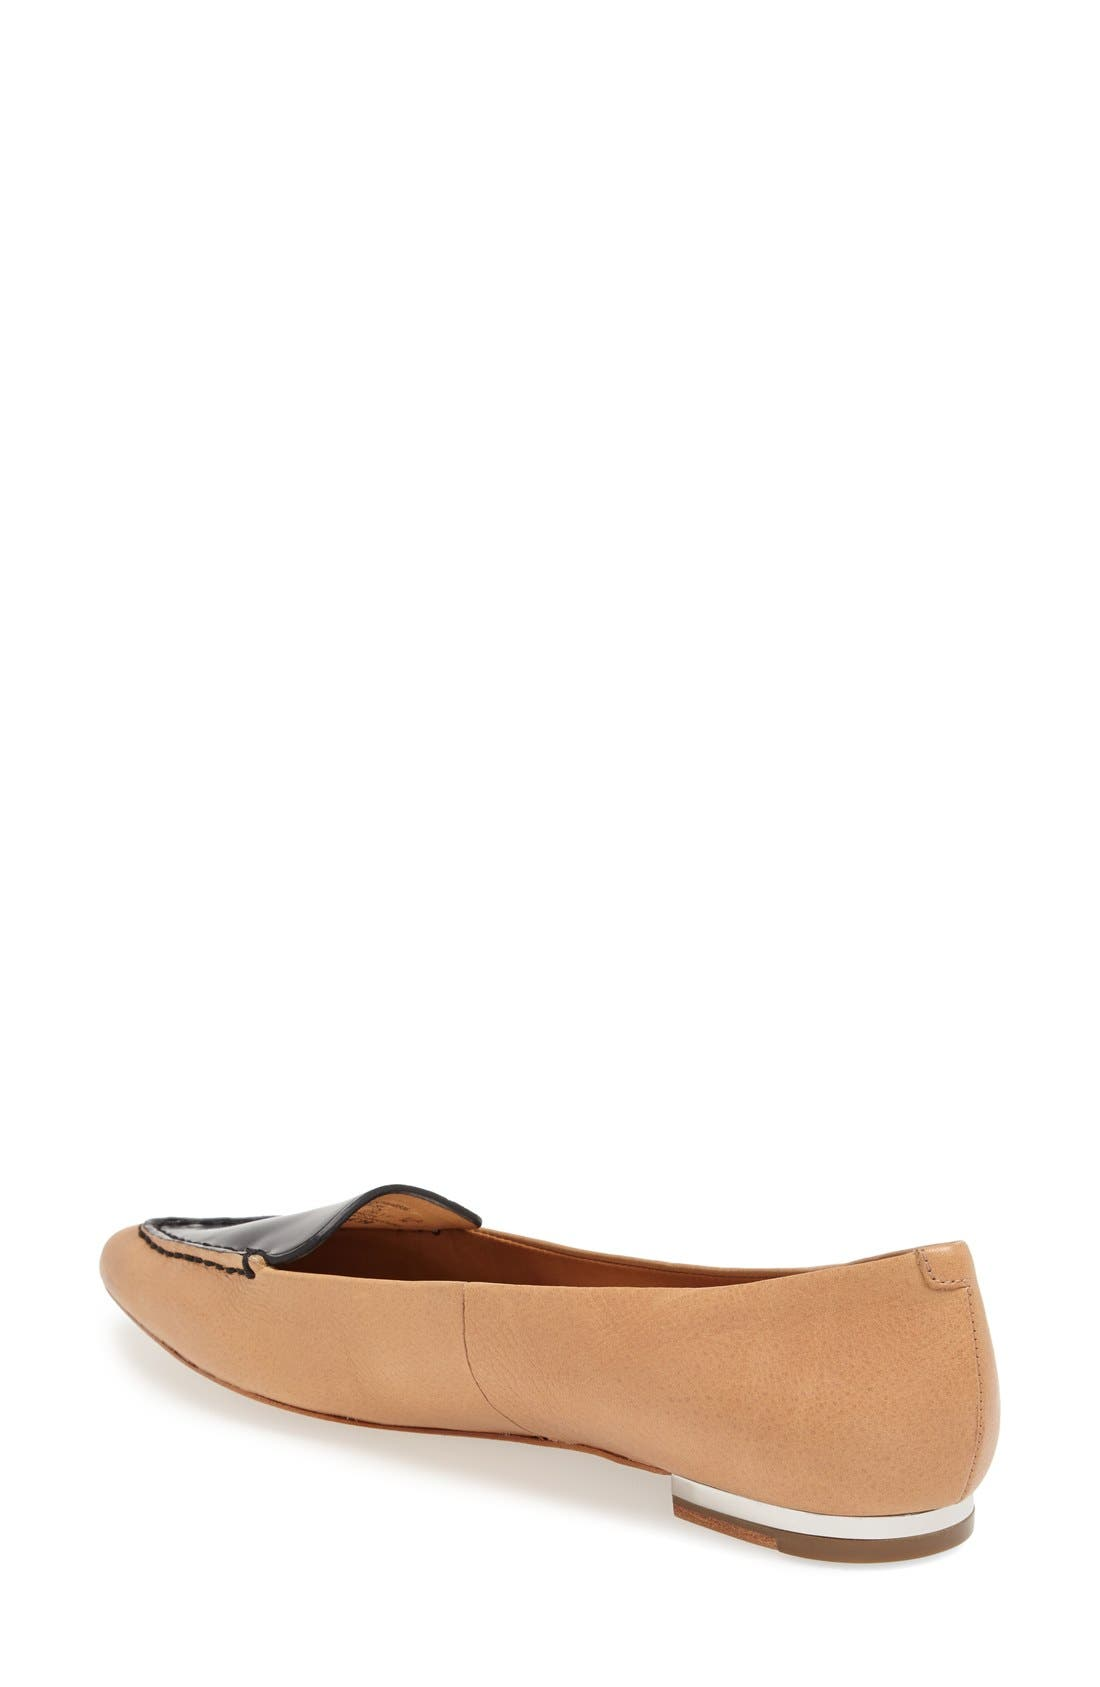 Alternate Image 2  - COACH 'Walsh' Leather Loafer (Women)